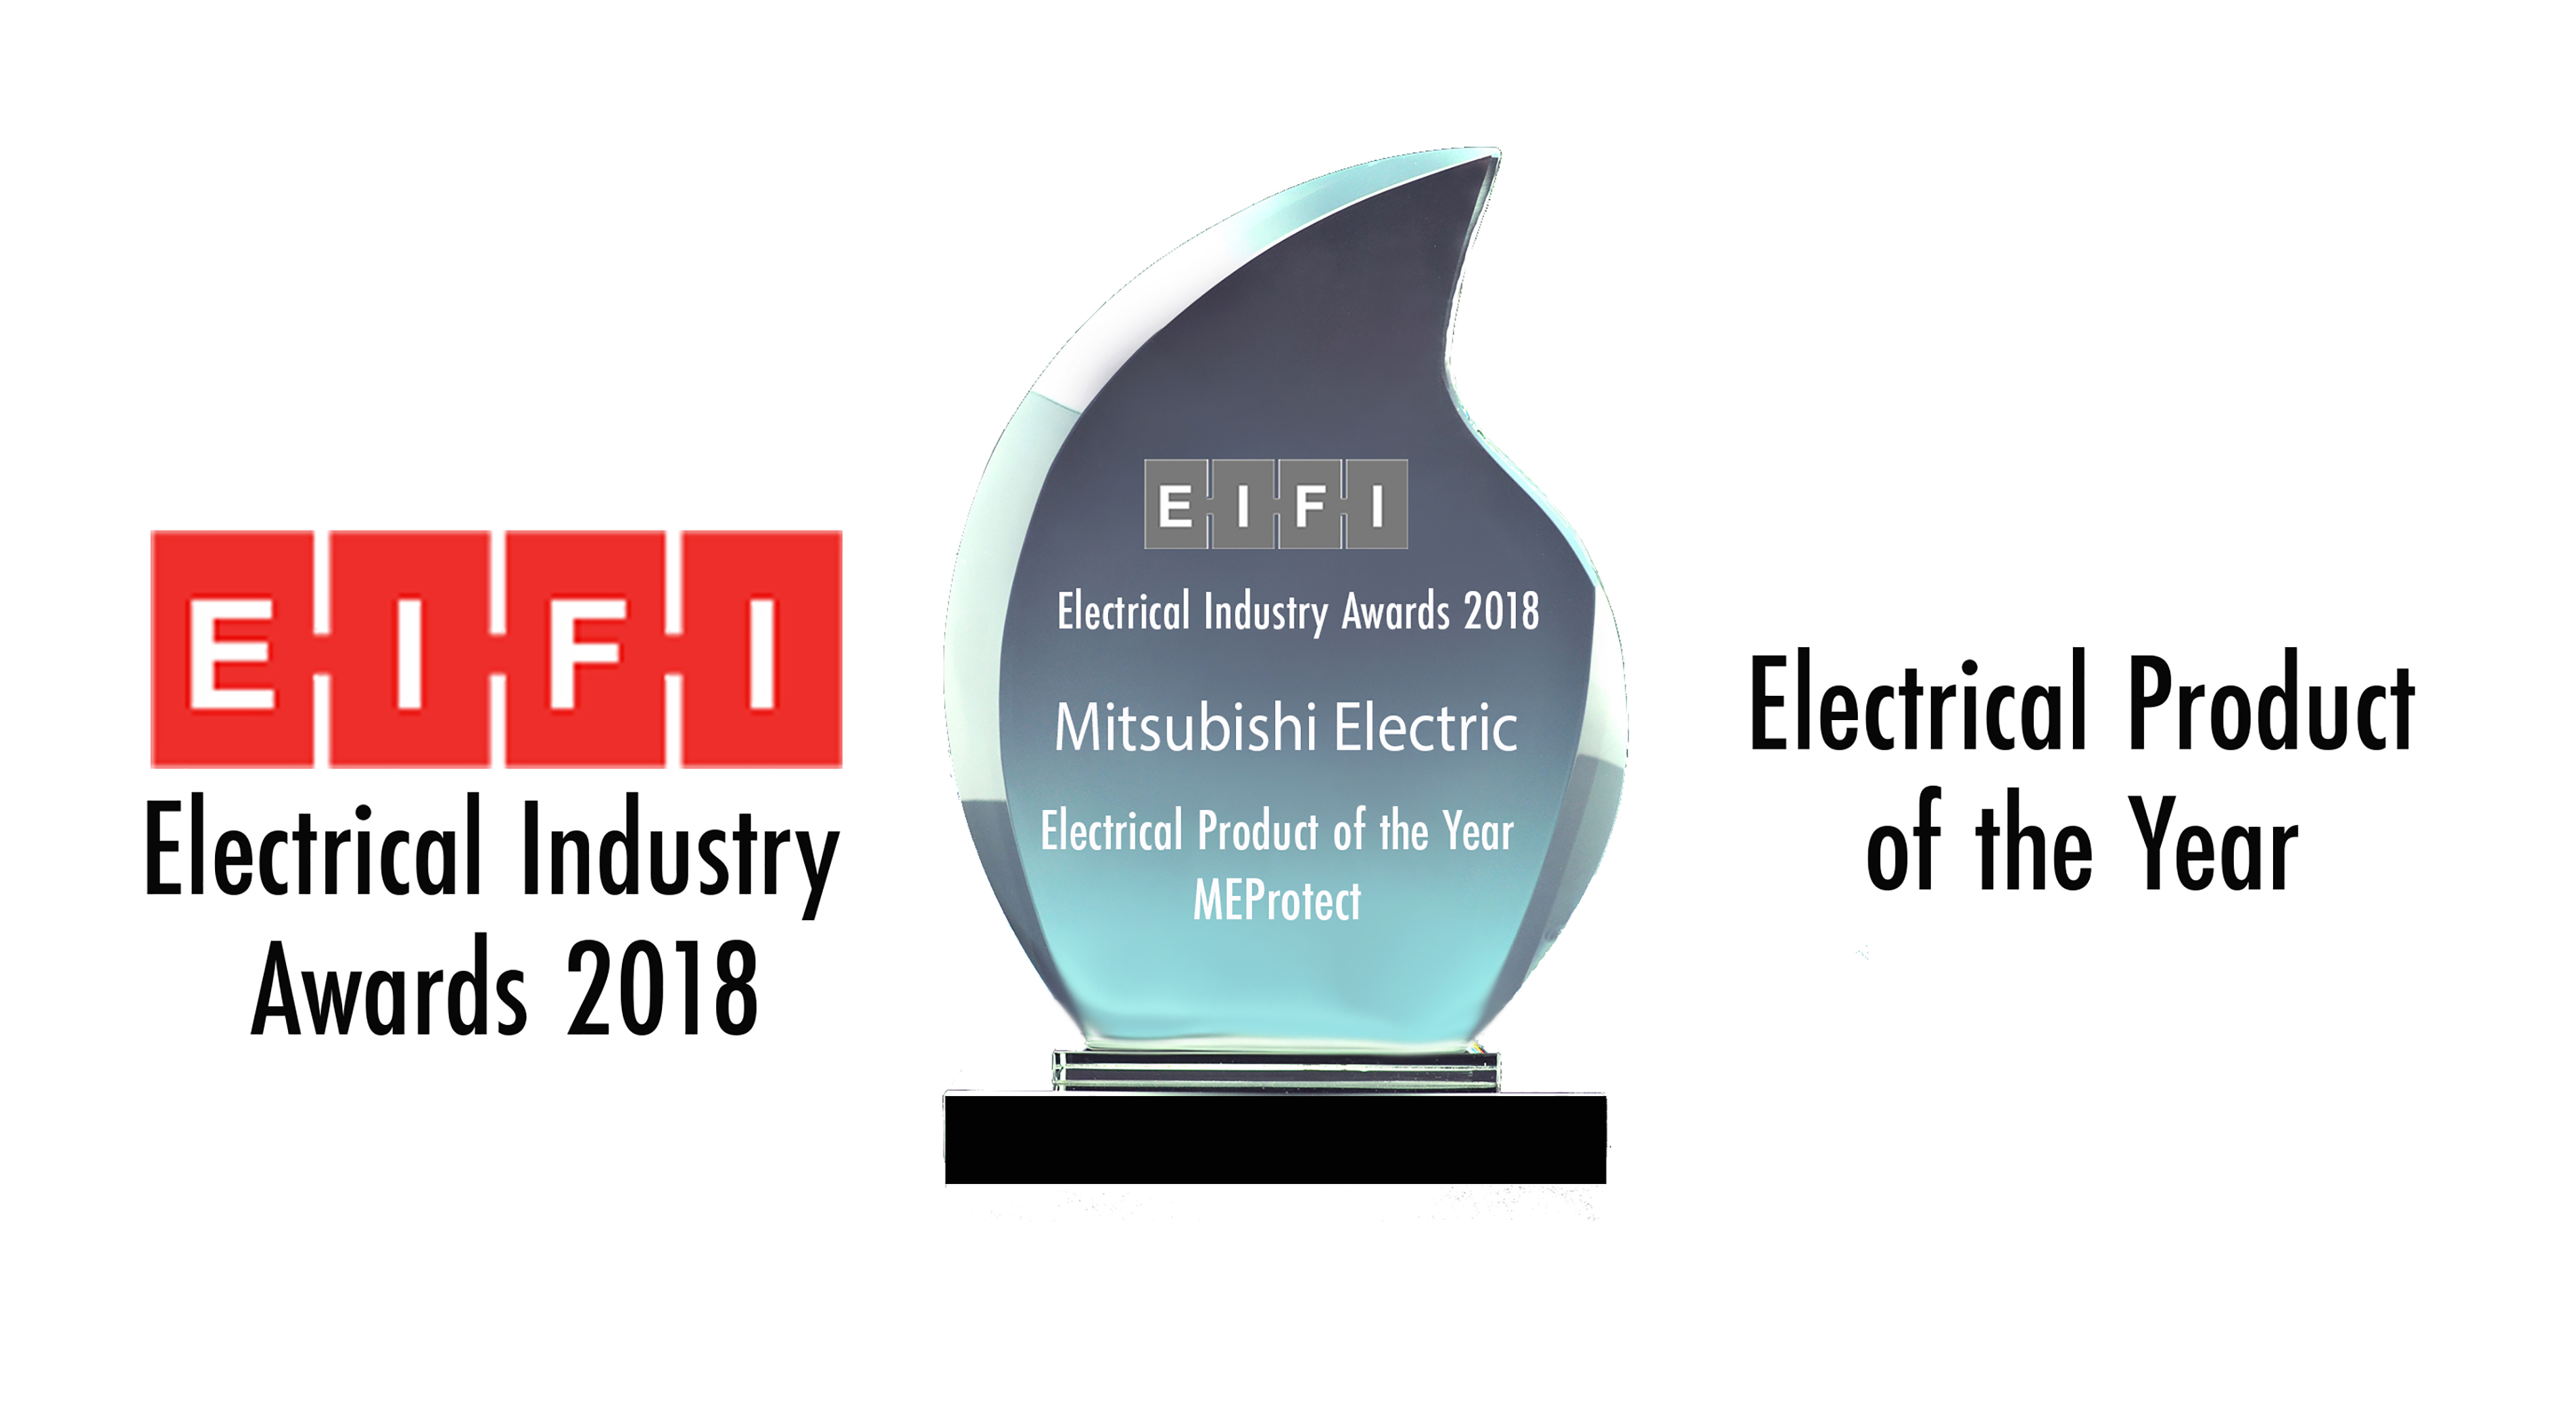 Smart safety unit wins 'Electrical Product of the Year'